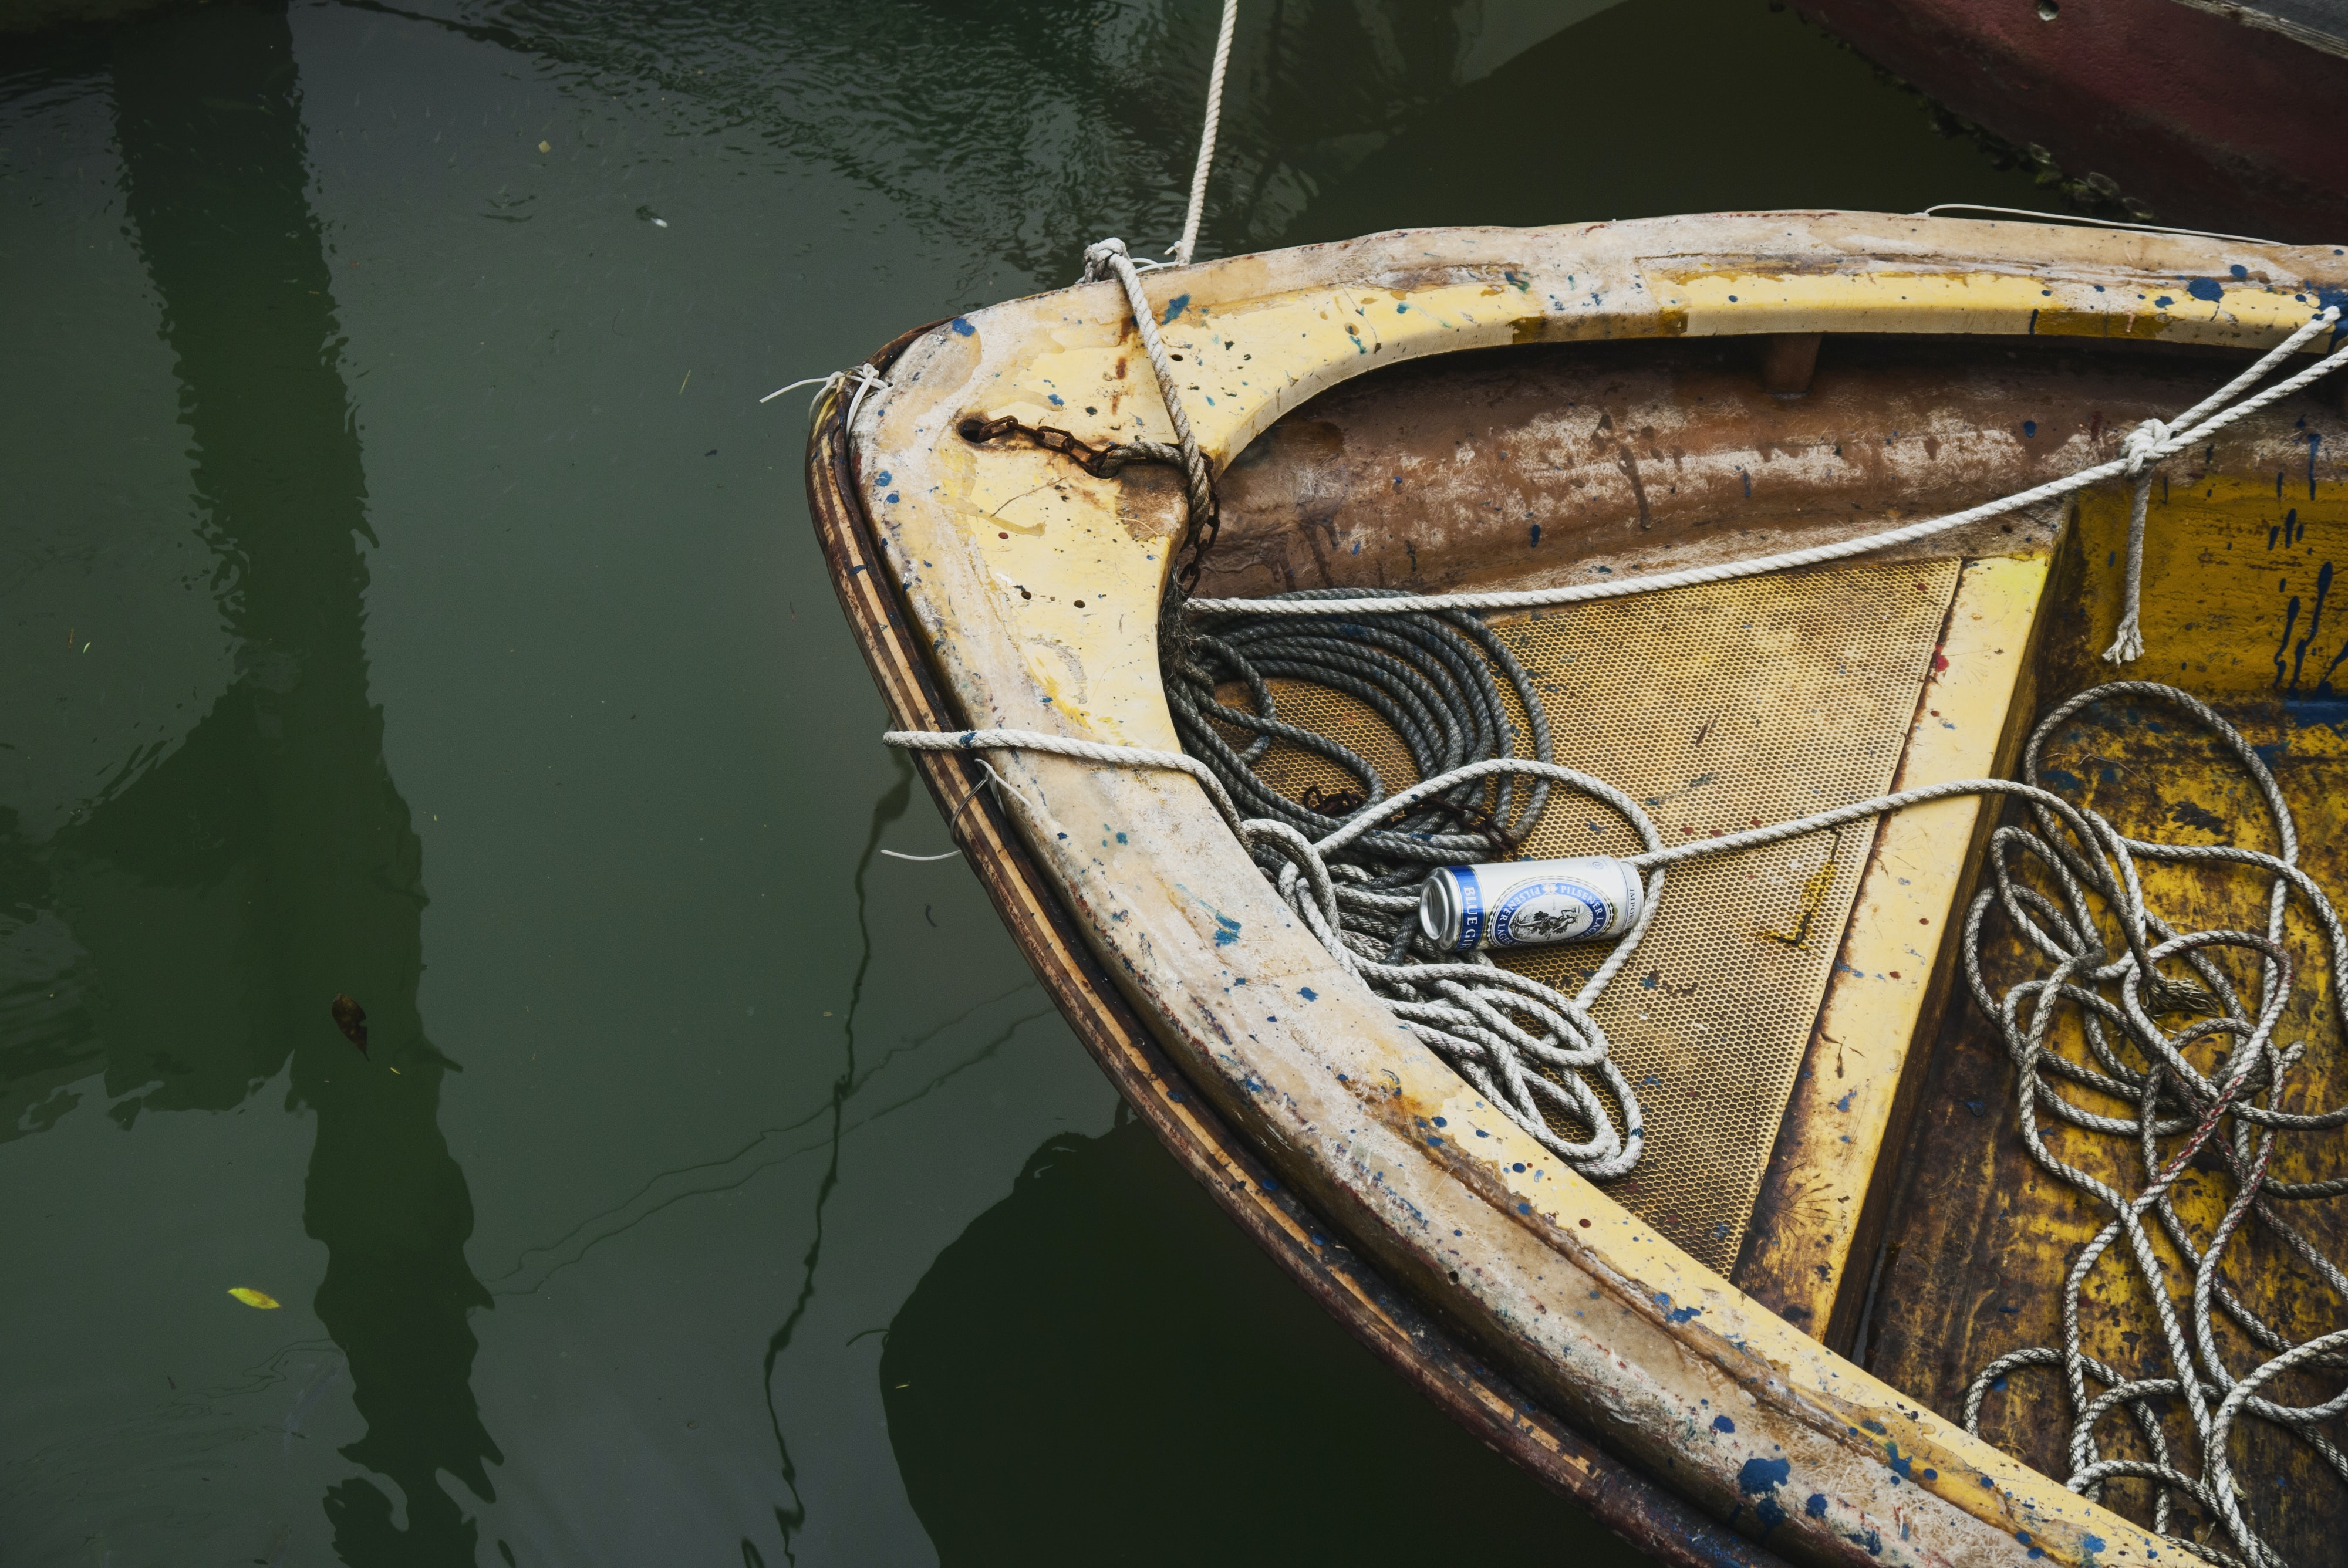 A rusty old boat on the river tied with rope and a beer inside it the mooring, tai O